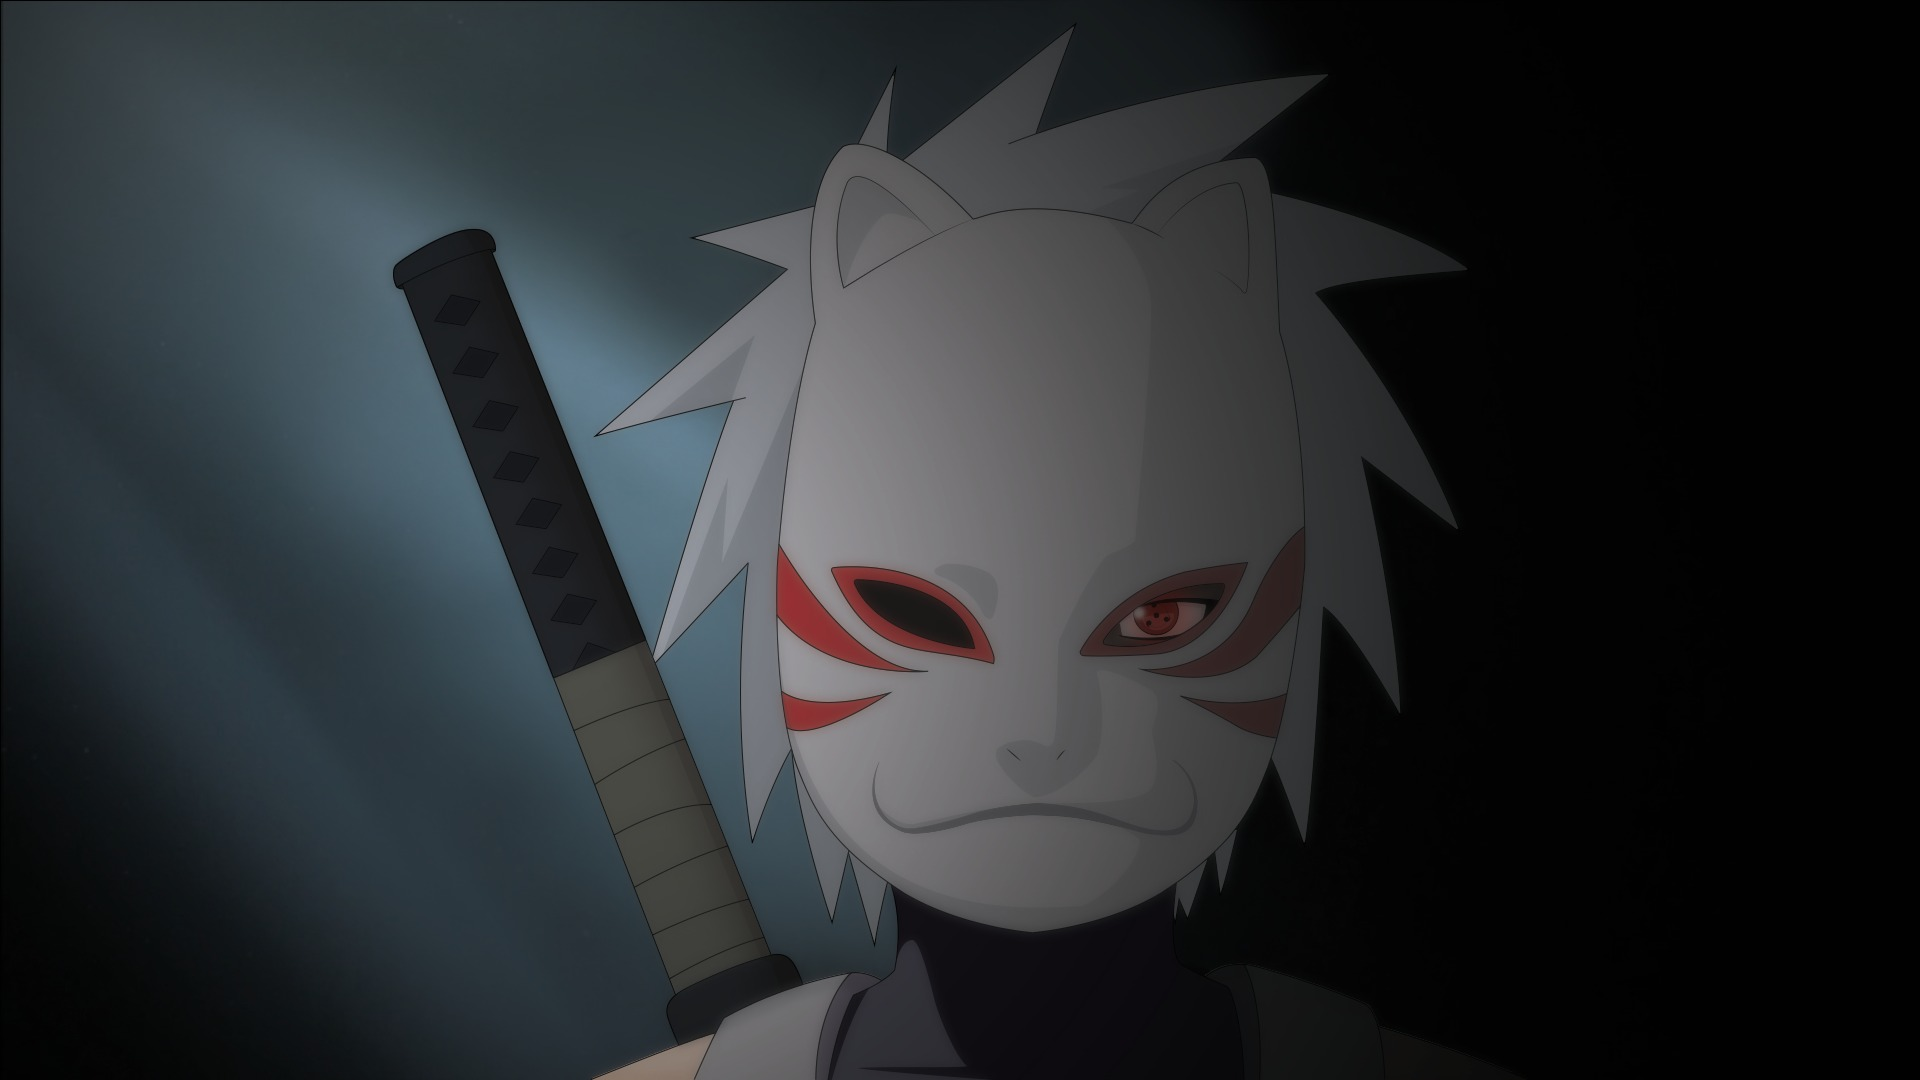 kakashi Anbu Computer Wallpapers Desktop Backgrounds 1920x1080